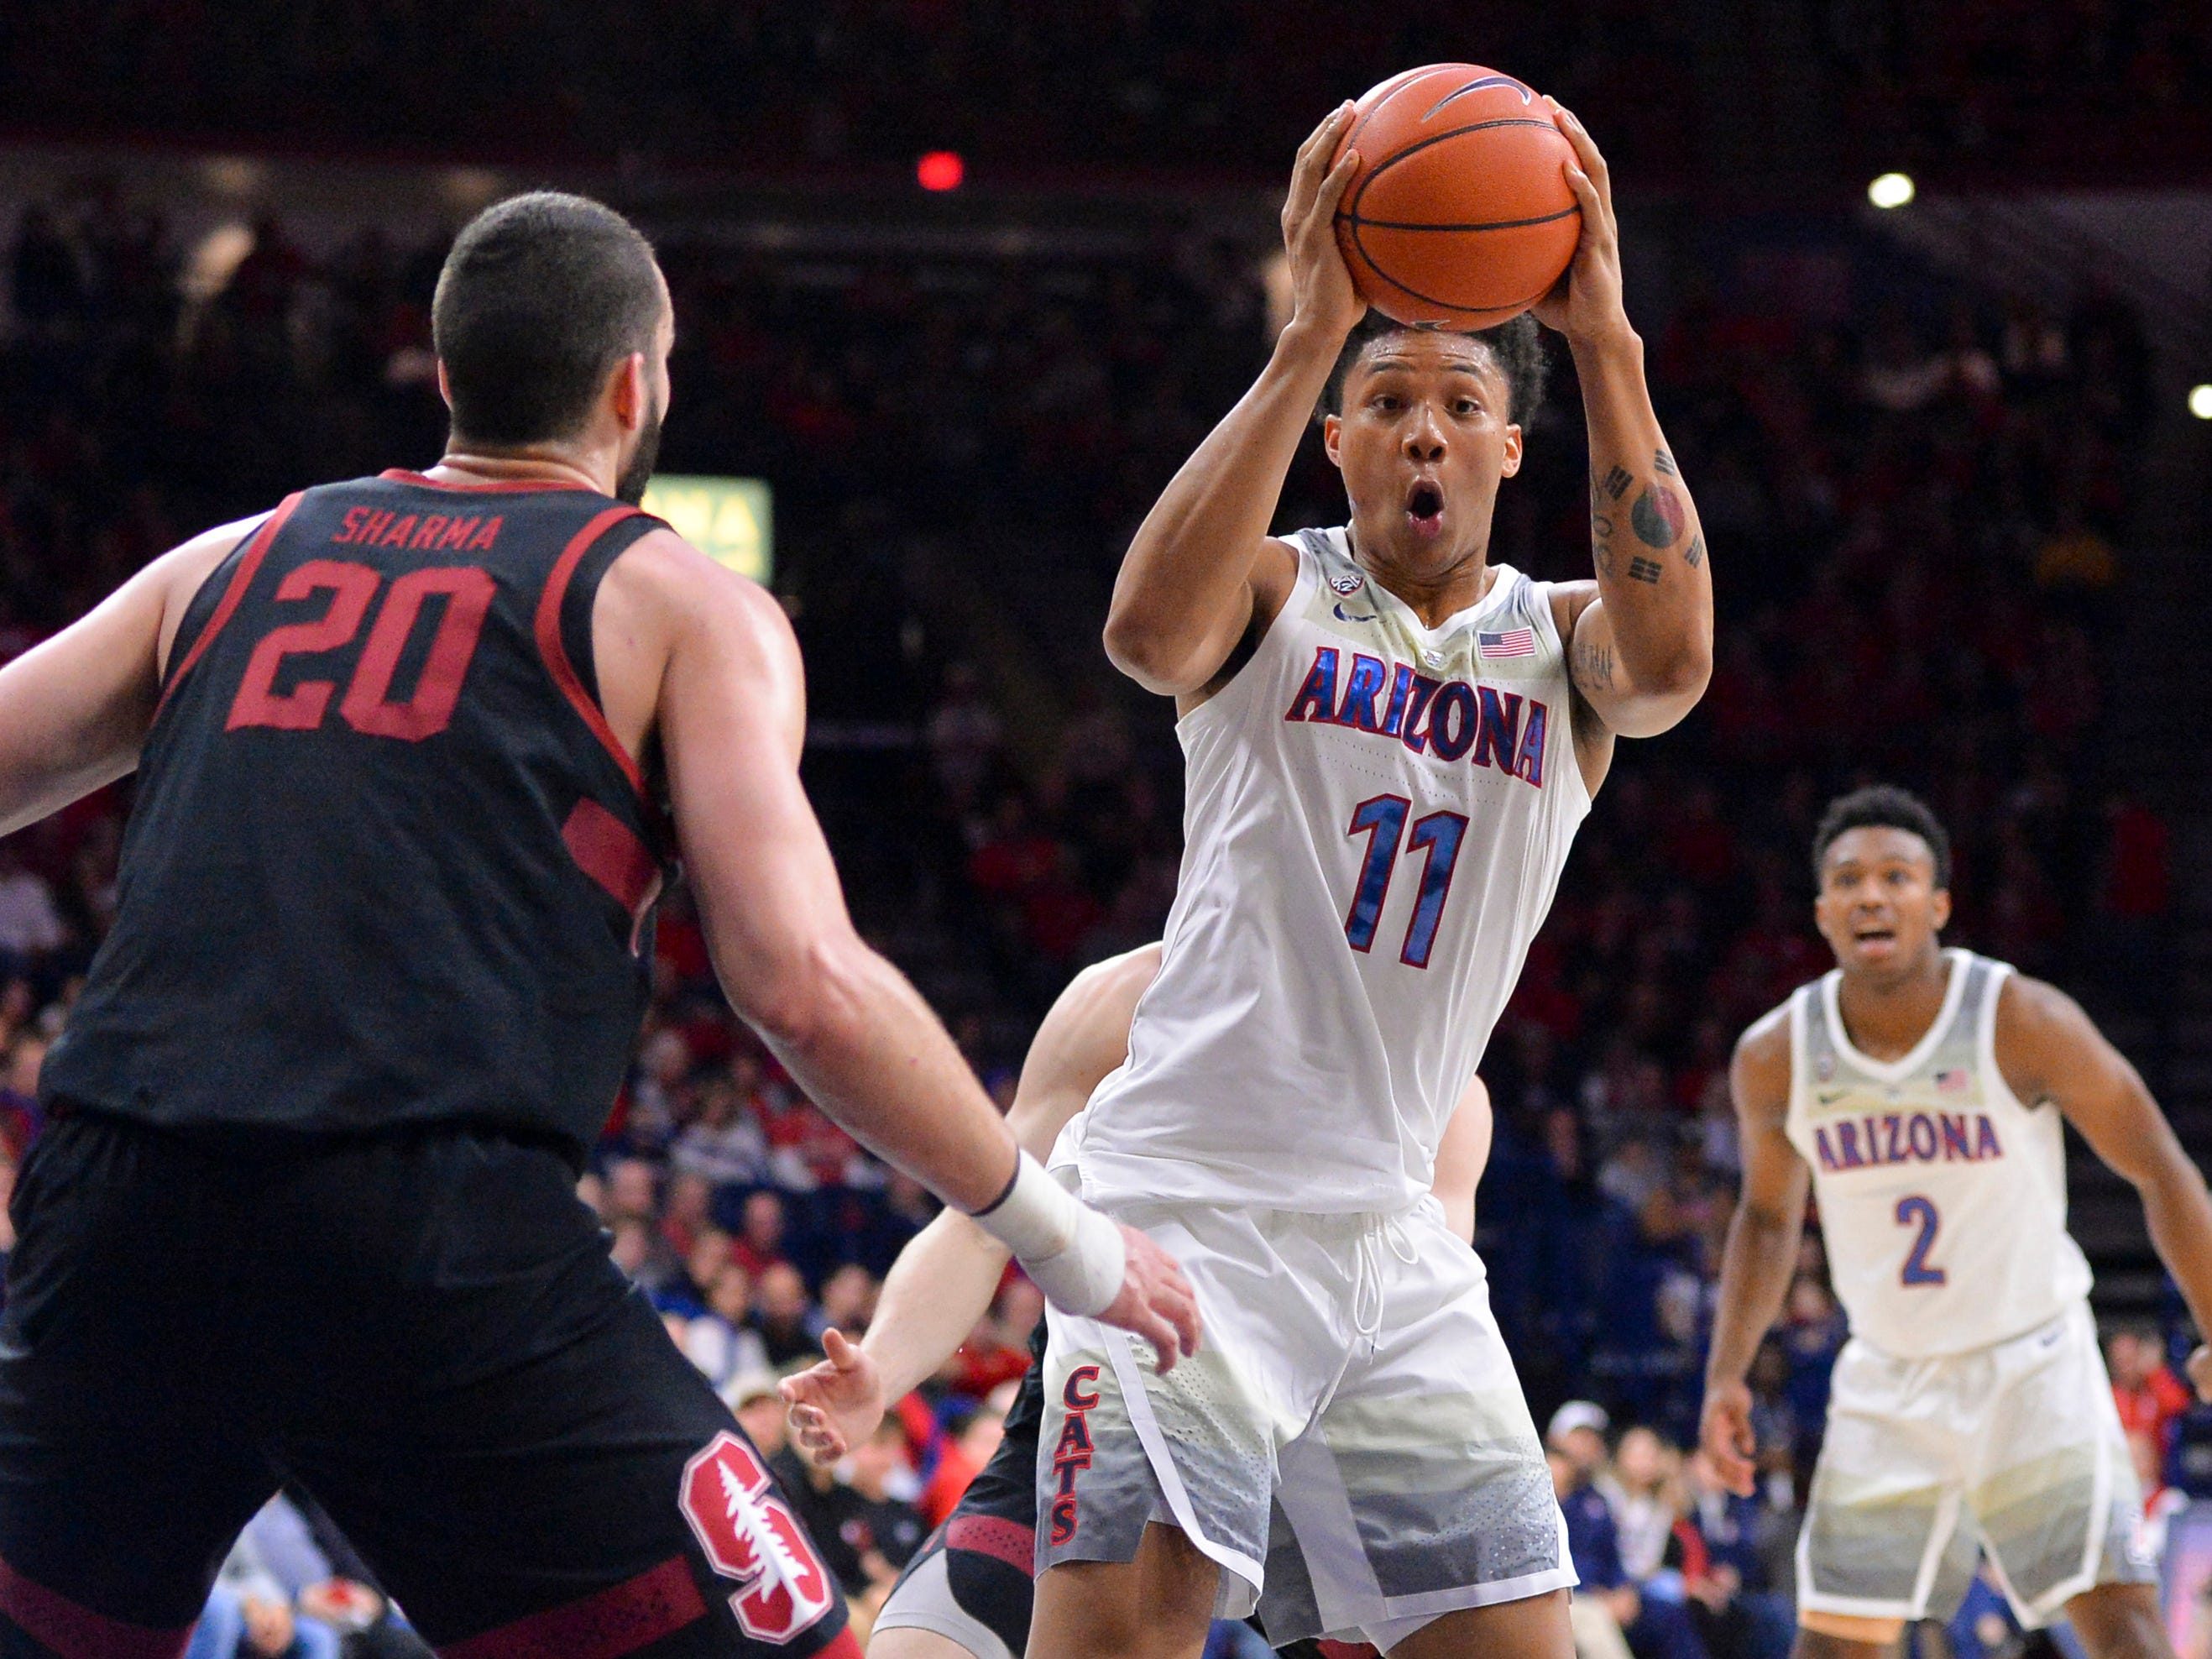 Feb 24, 2019: Arizona Wildcats forward Ira Lee (11) looks to pass the ball against Stanford Cardinal center Josh Sharma (20) during the second half at McKale Center.